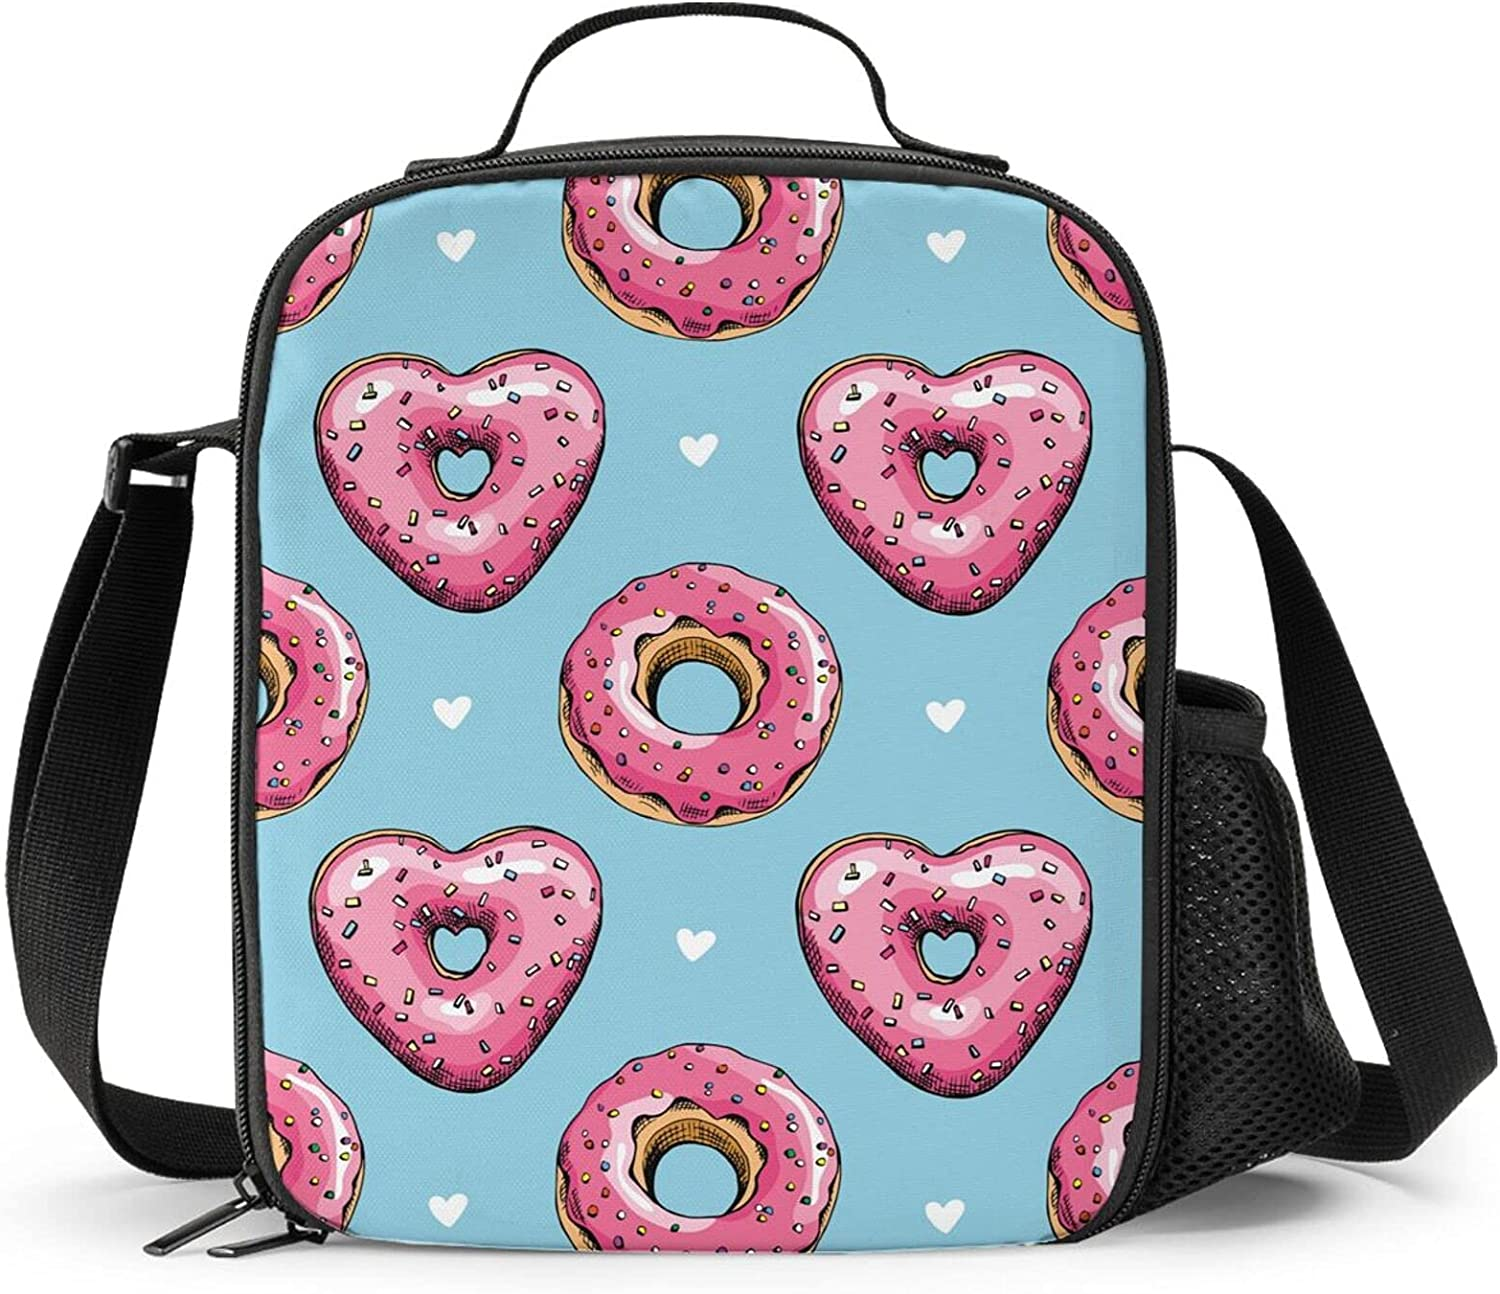 Niukom Heart Donuts Pink Blue Reusable Lunch Bag Kid'S Insulated Tote Lunch Box Food Bag Cooler Bag Meal Bag Food Container For Boys Girls Child Back To School Travel Picnic Beach Camping Travel